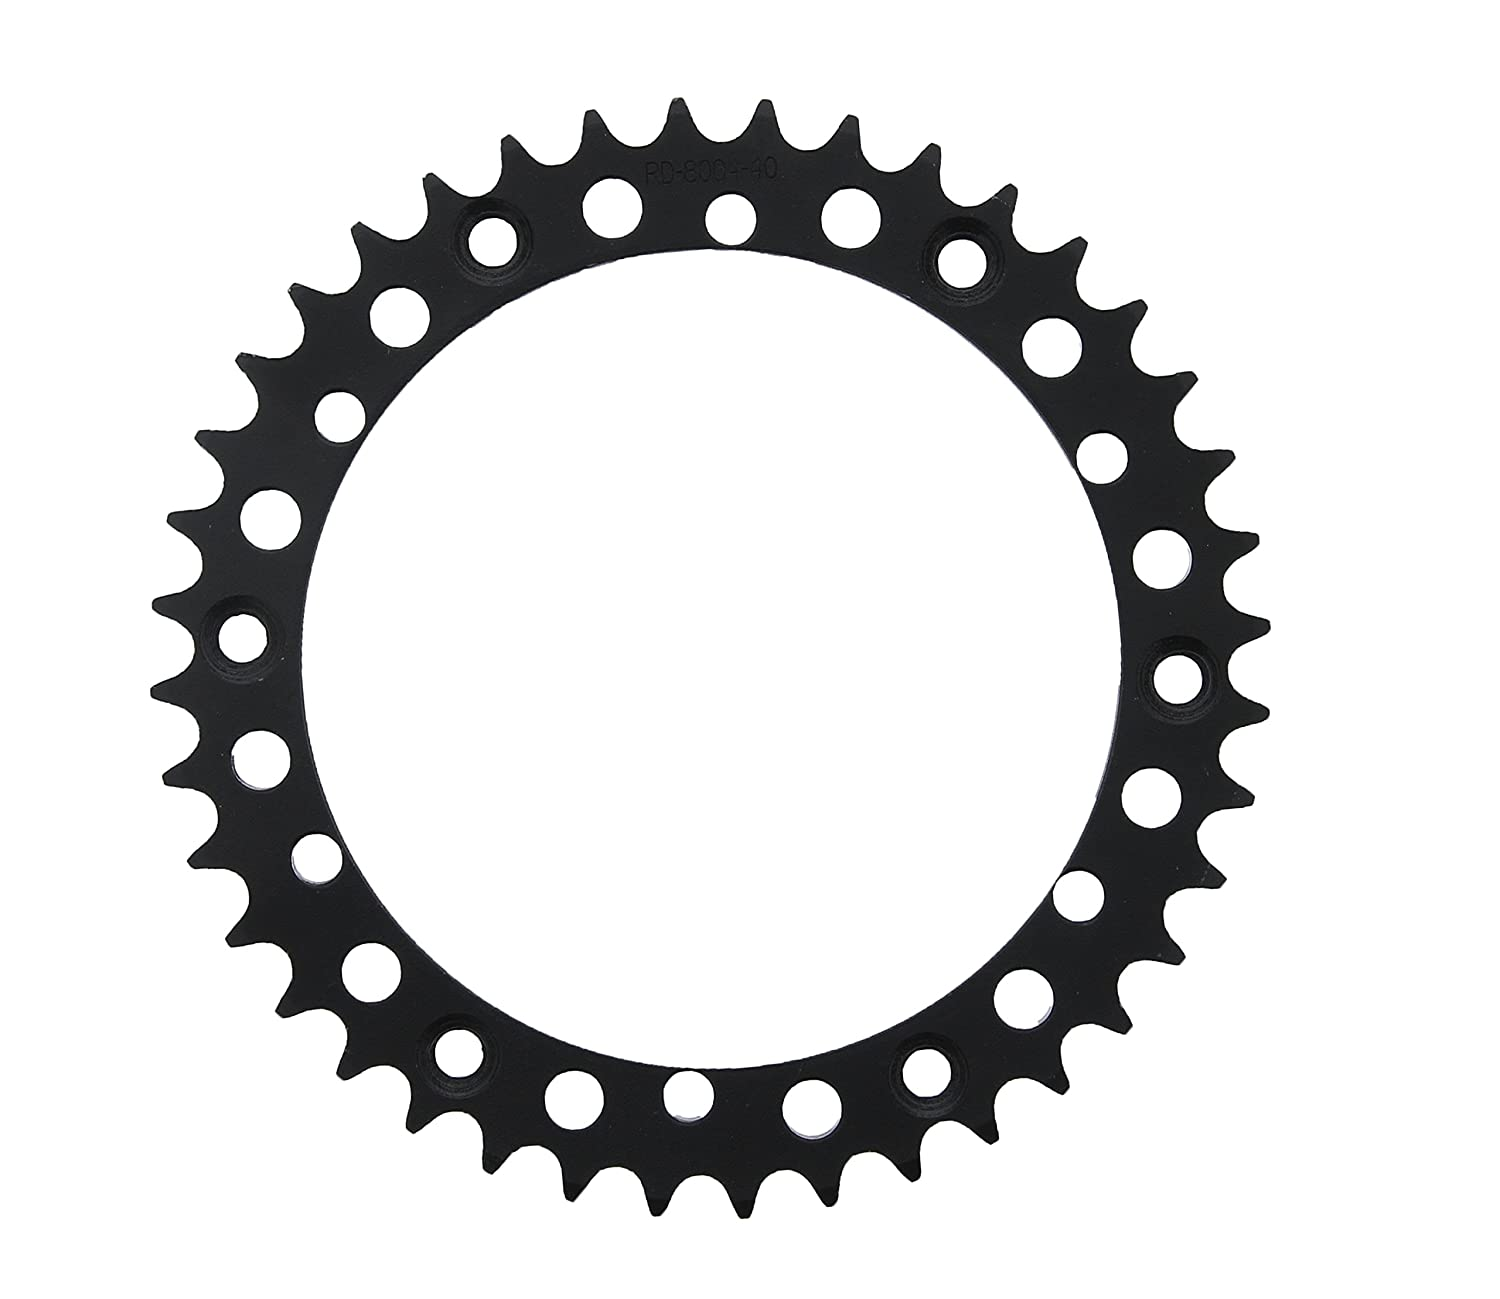 98-2000 fits Yamaha YFM350 350 Warrior 12 Tooth Front /& 40 Tooth Rear Black Sprocket